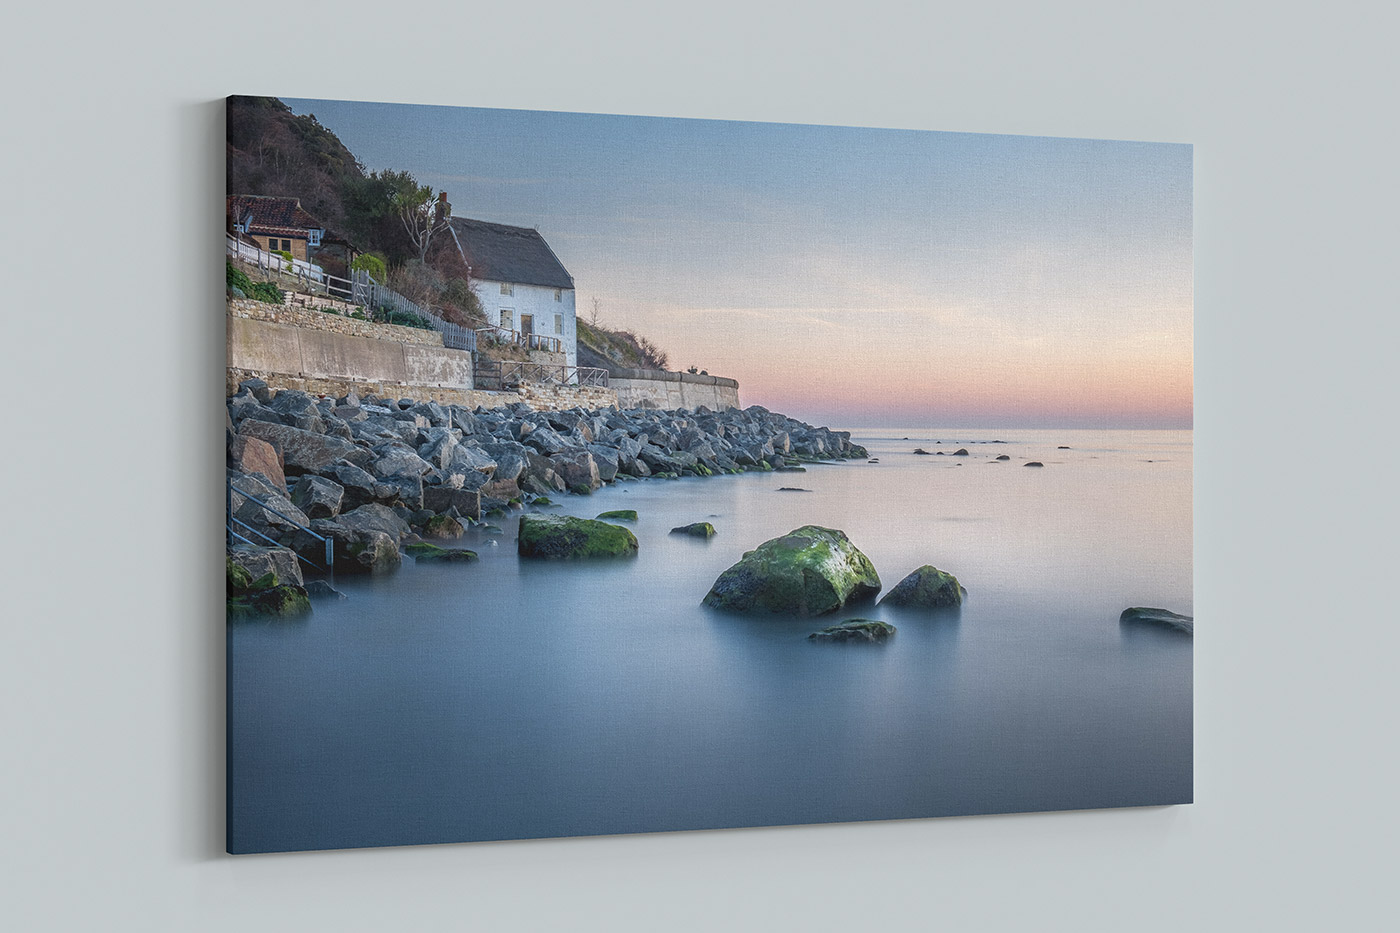 Runswick Bay Wall Art